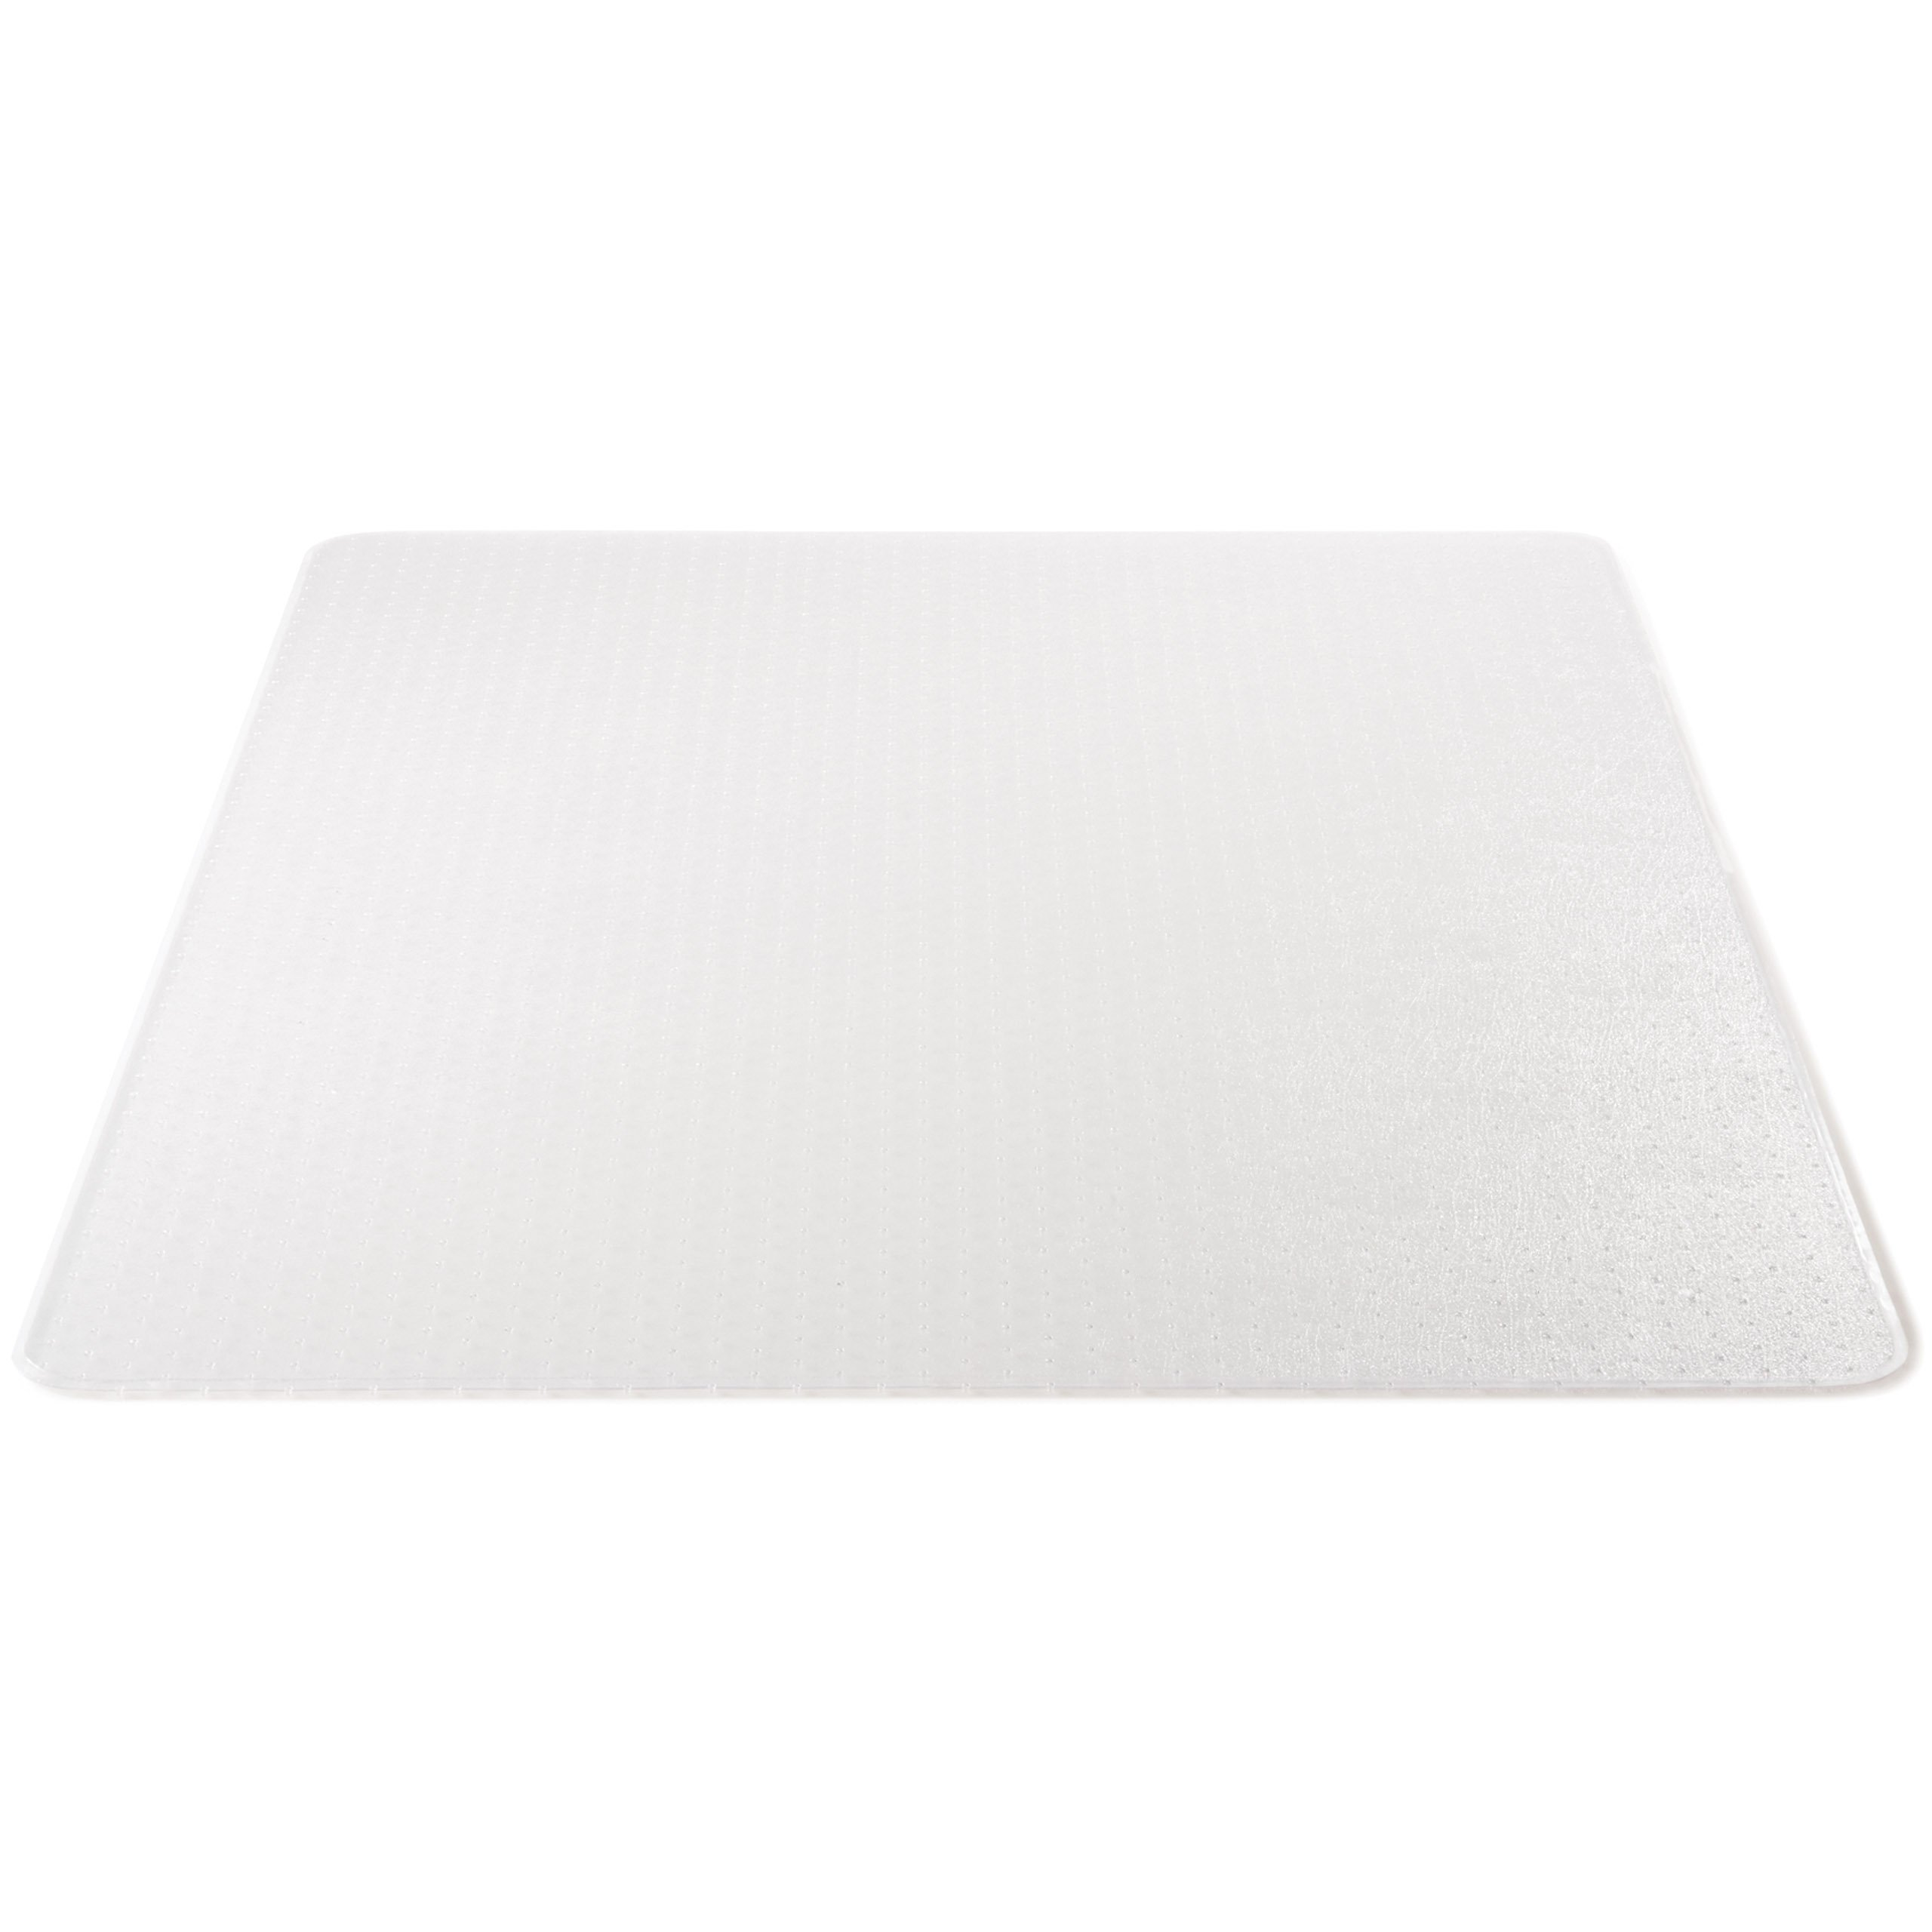 Deflecto DuraMat Clear Chair Mat, Low Pile Carpet Use, Rectangle, Beveled Edge, 46 x 60 Inches (CM13443FCOM) by Deflecto